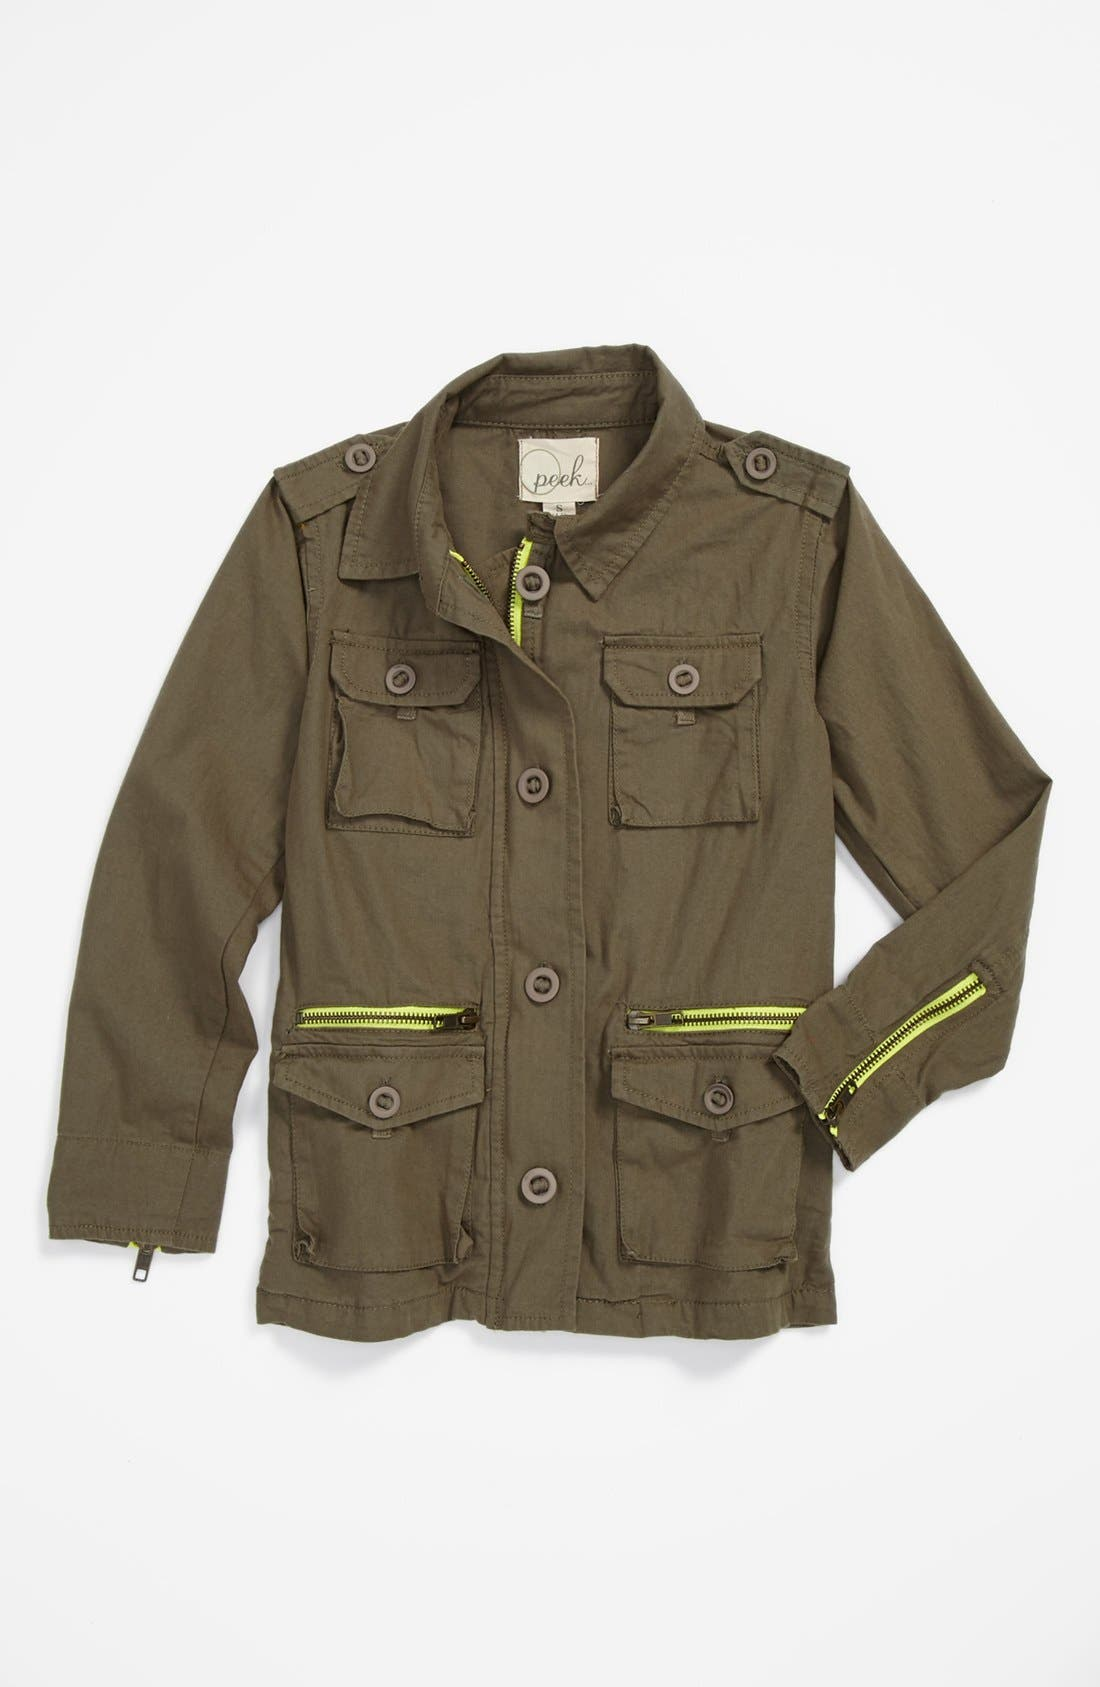 Alternate Image 1 Selected - Peek 'McCabe' Military Jacket (Big Girls)